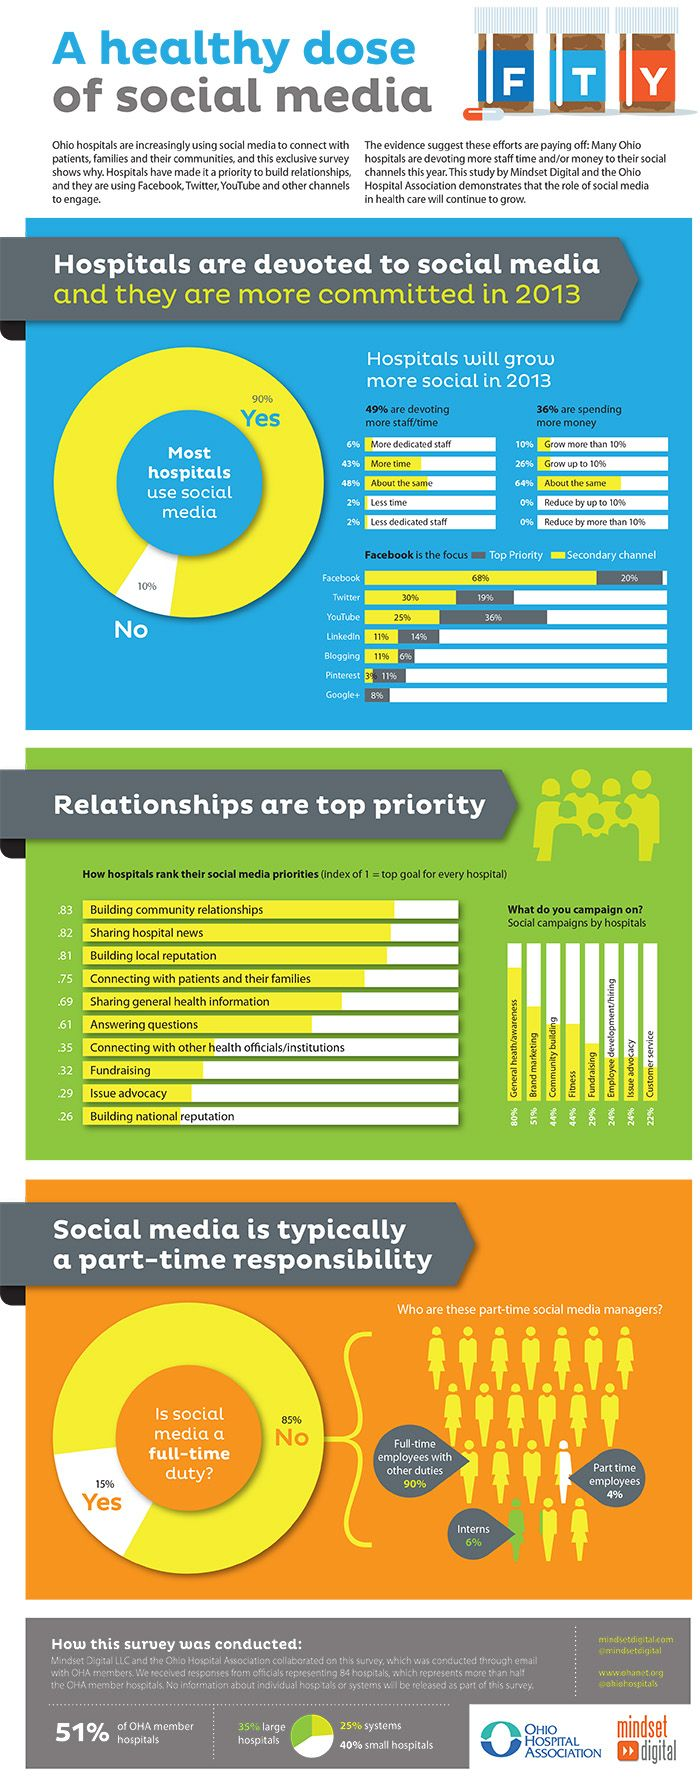 Interesting infographic on how the healthcare sector is using social media or planning to use it